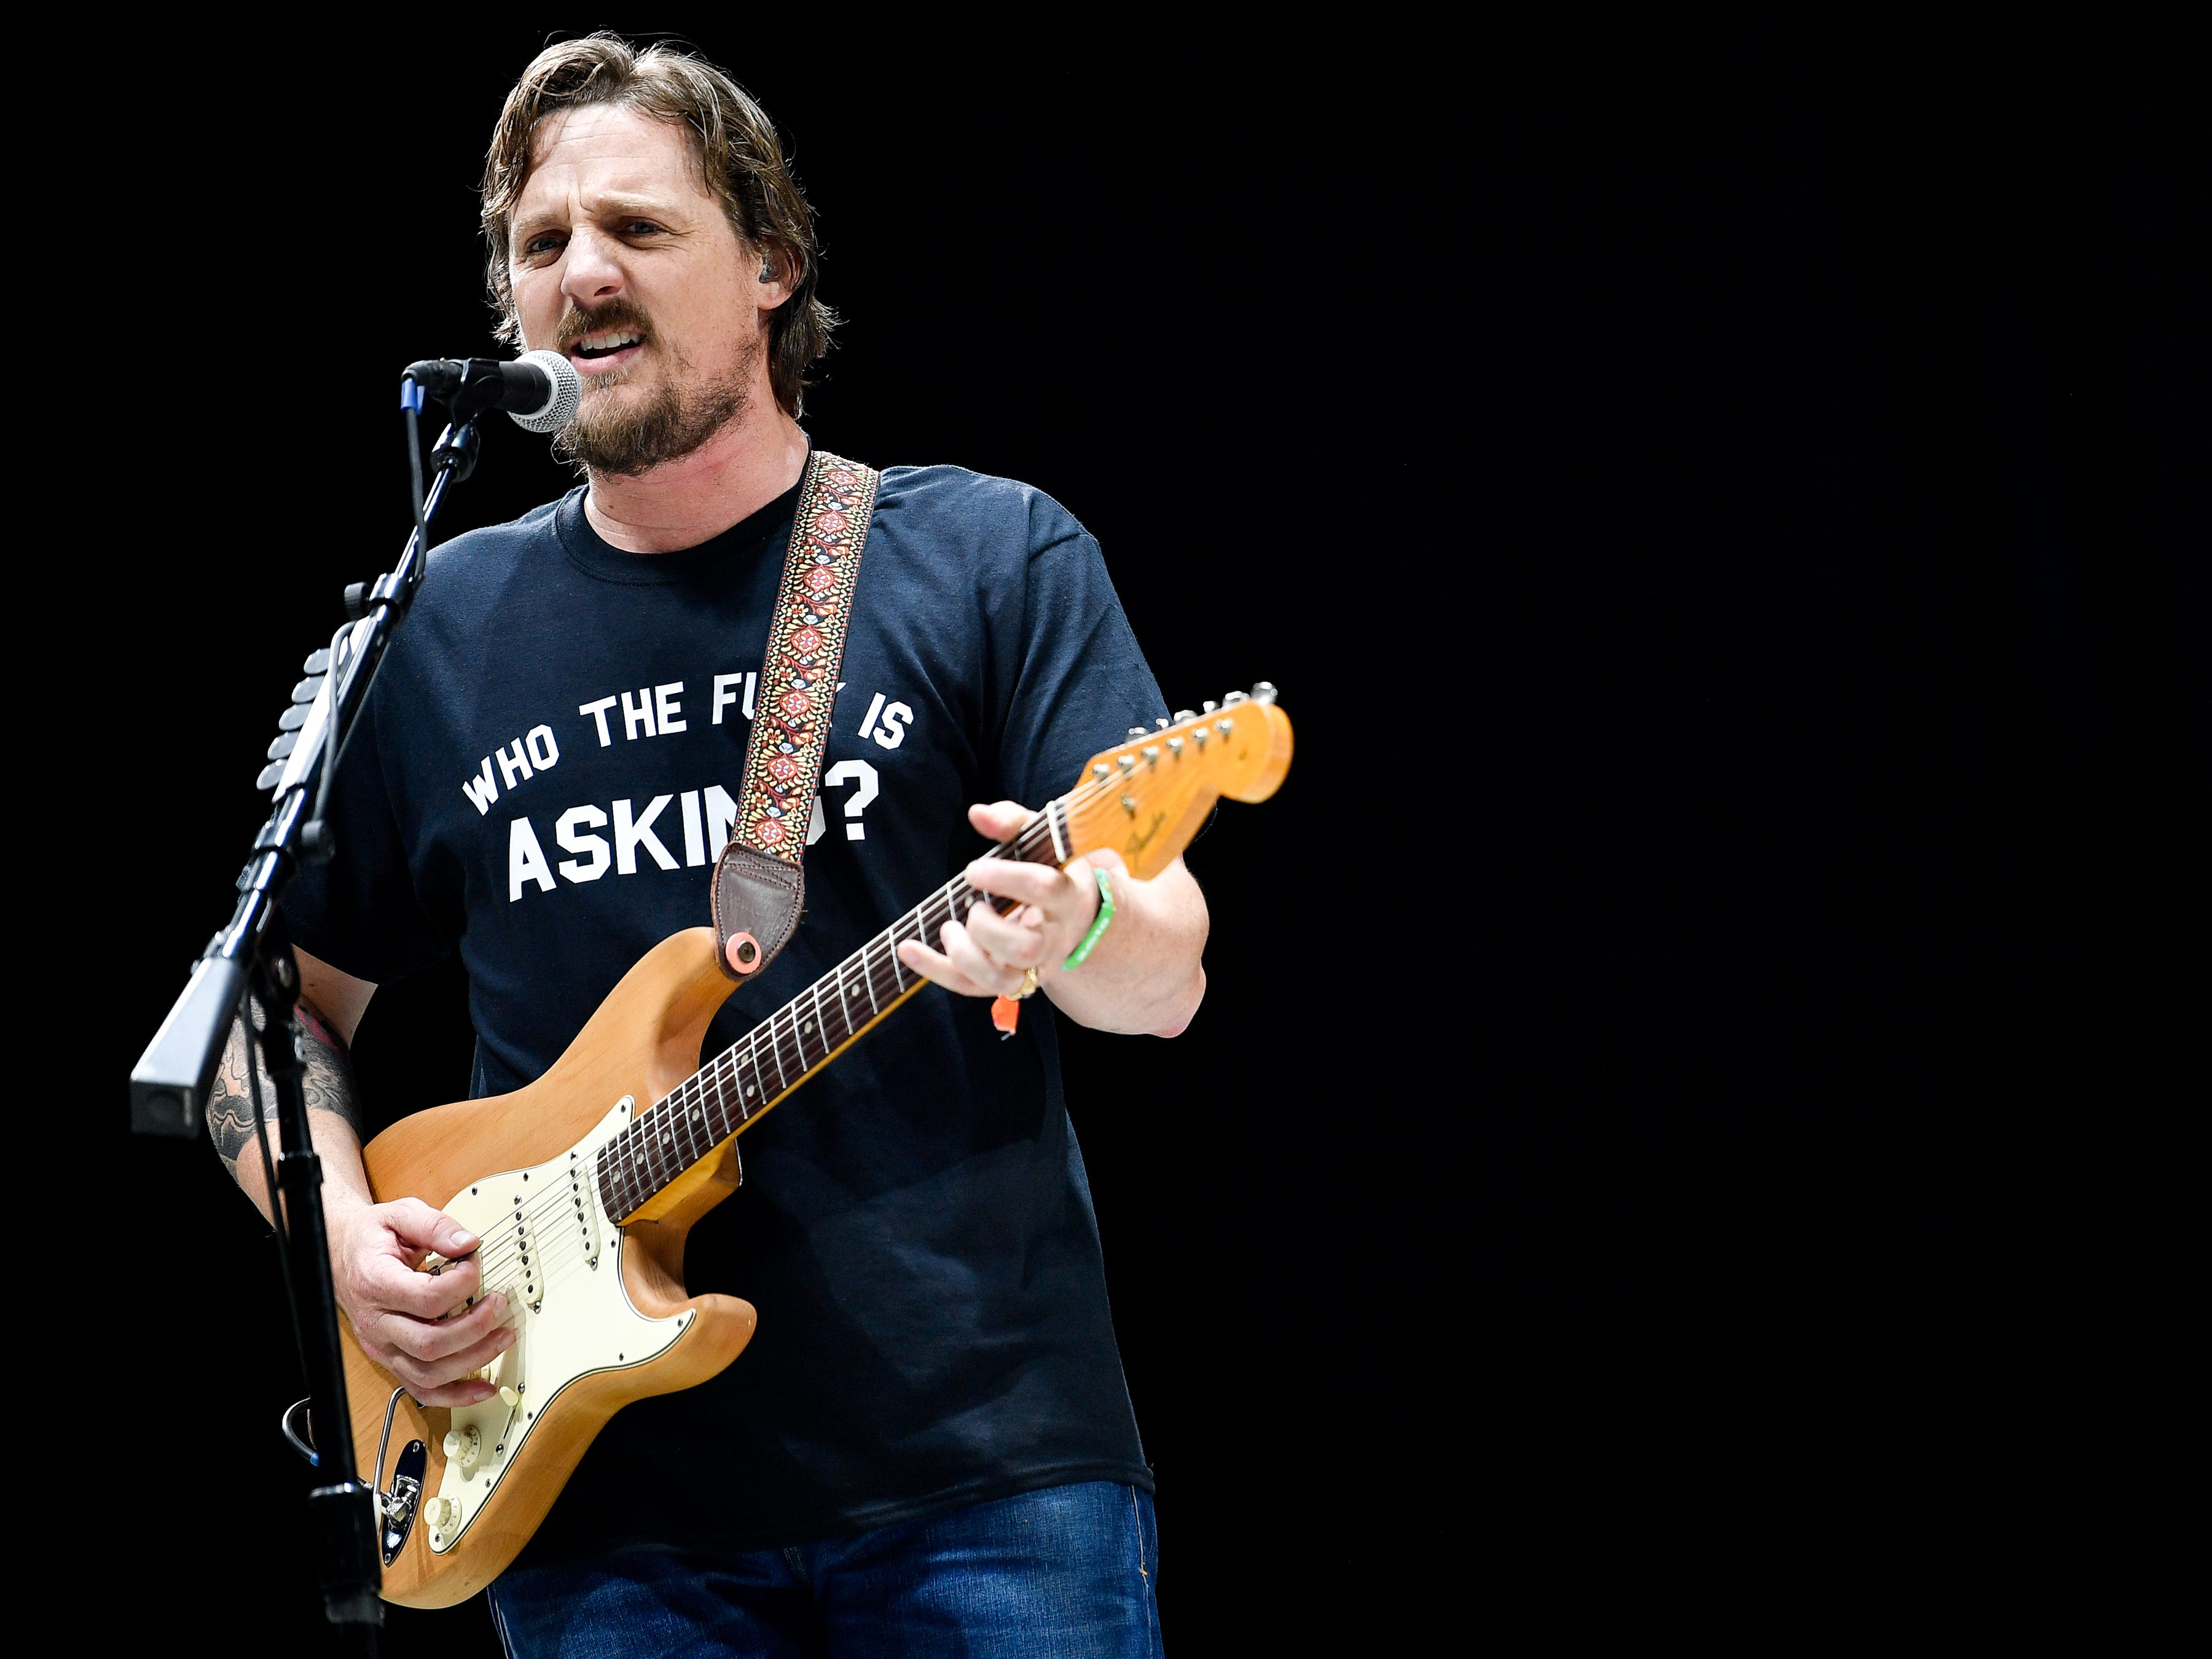 Sturgill Simpson says he s tested positive for COVID-19